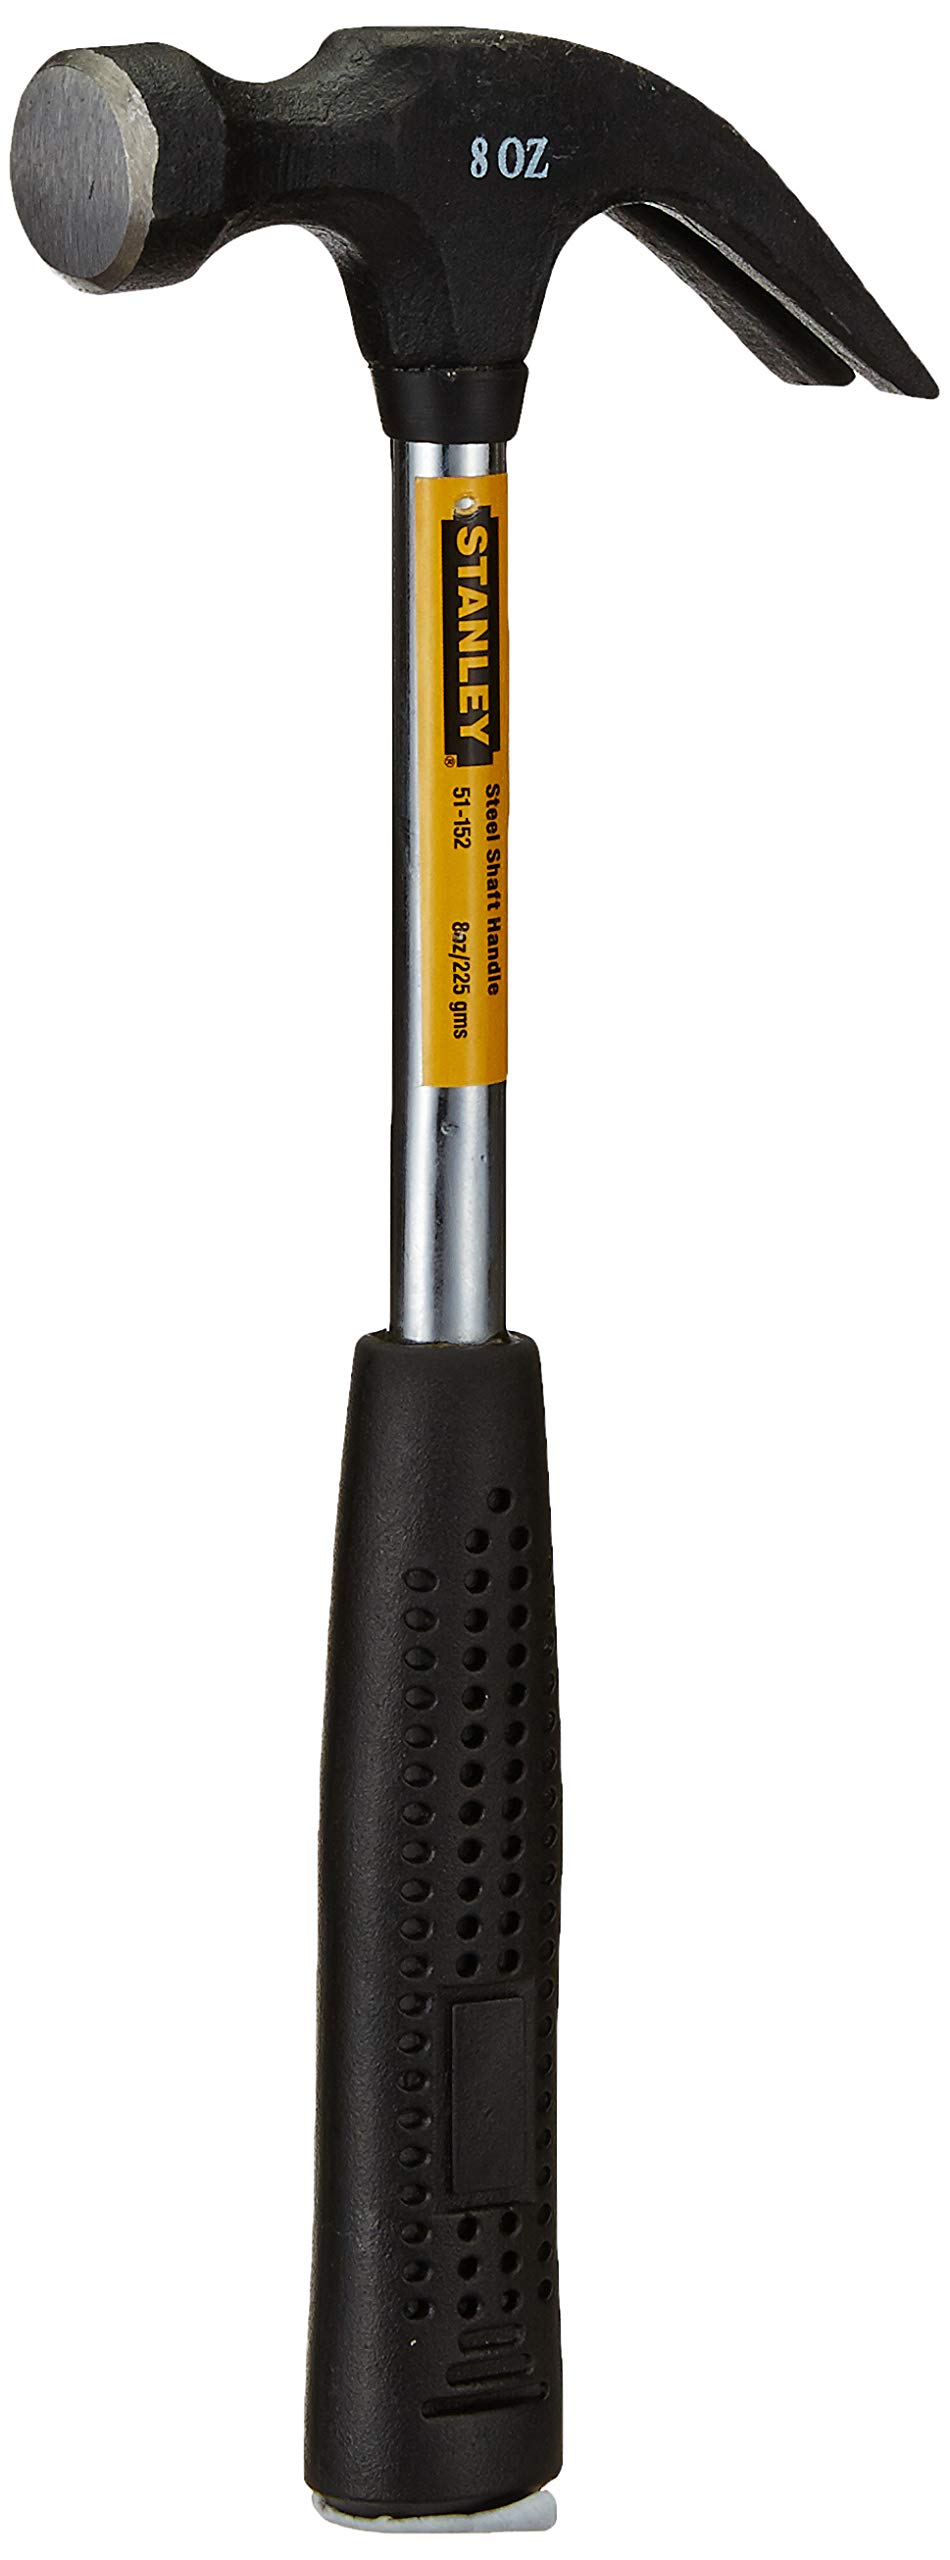 Stanley Claw Hammer Steel Shaft (Black and Chrome) product image